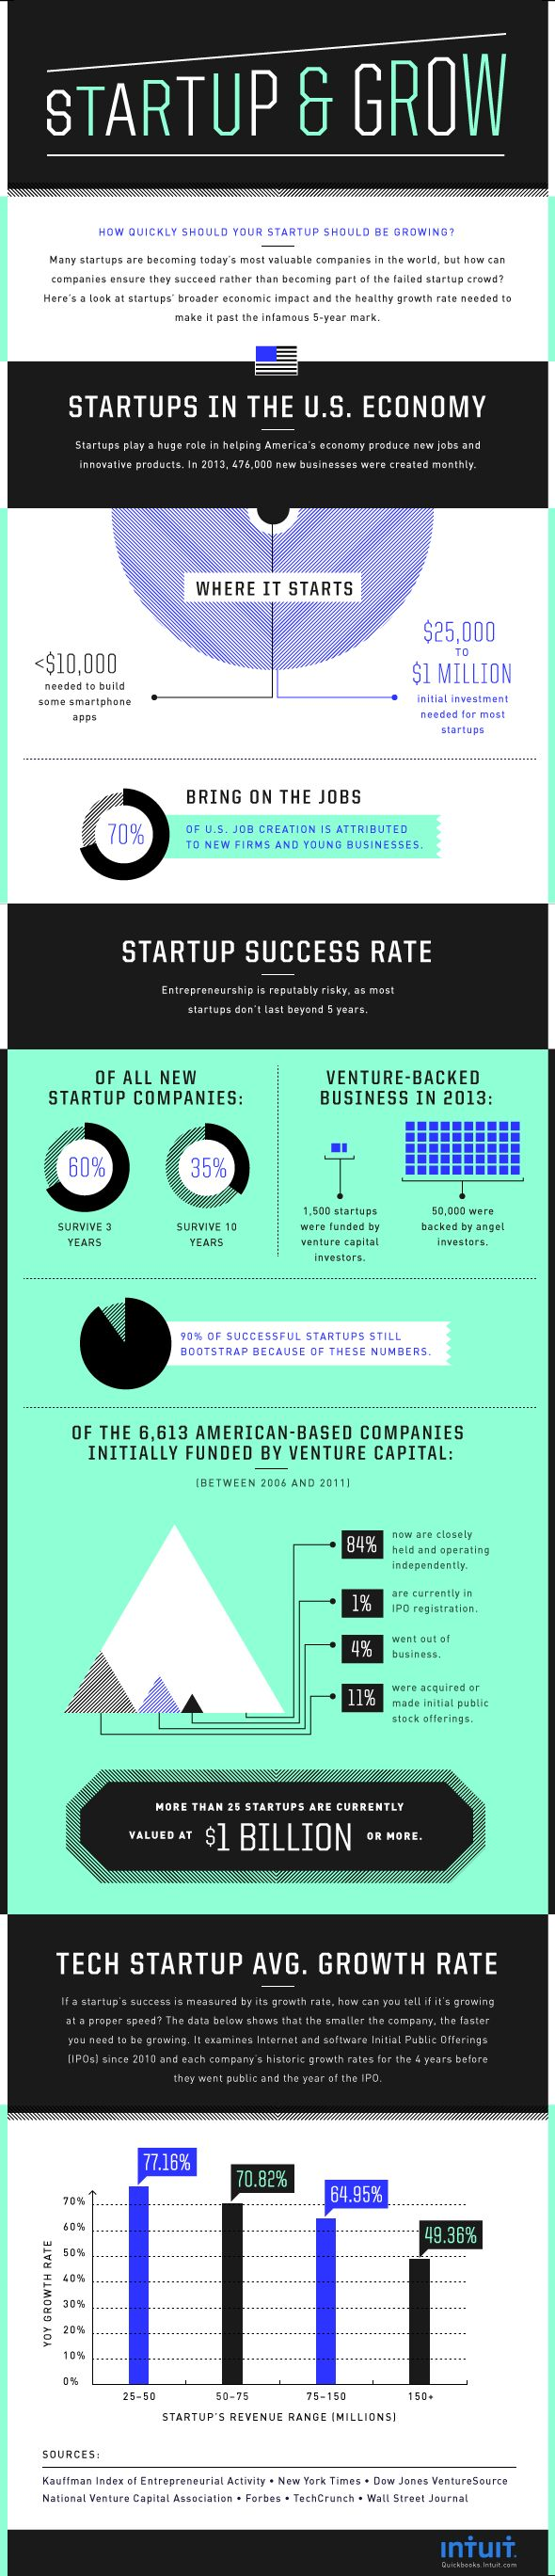 The Growth Your Startup Needs to Survive Past the 5-Year Mark (Infographic) | Inc.com